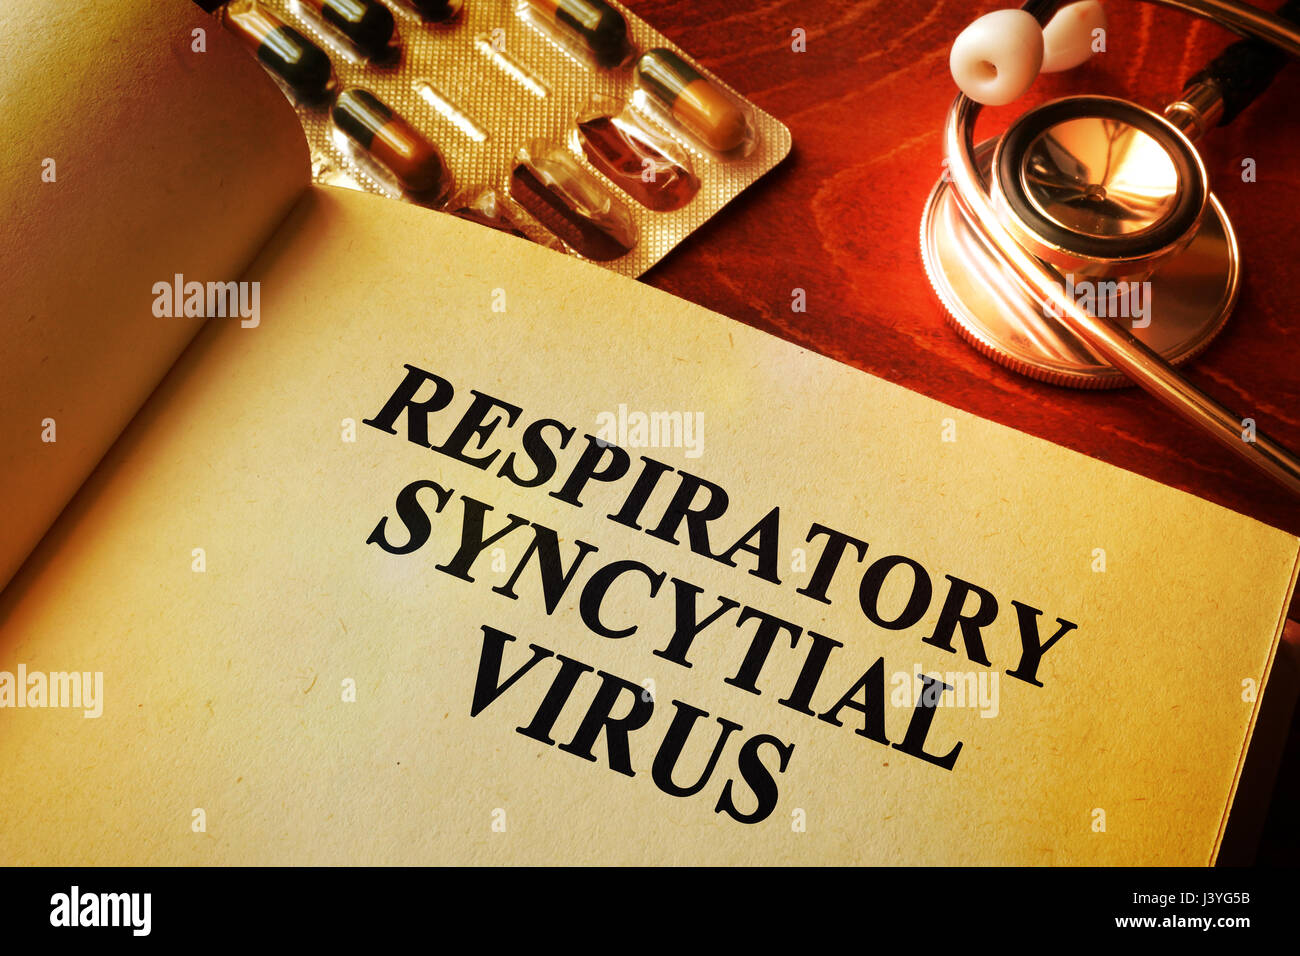 Book with title Respiratory syncytial virus RSV. - Stock Image